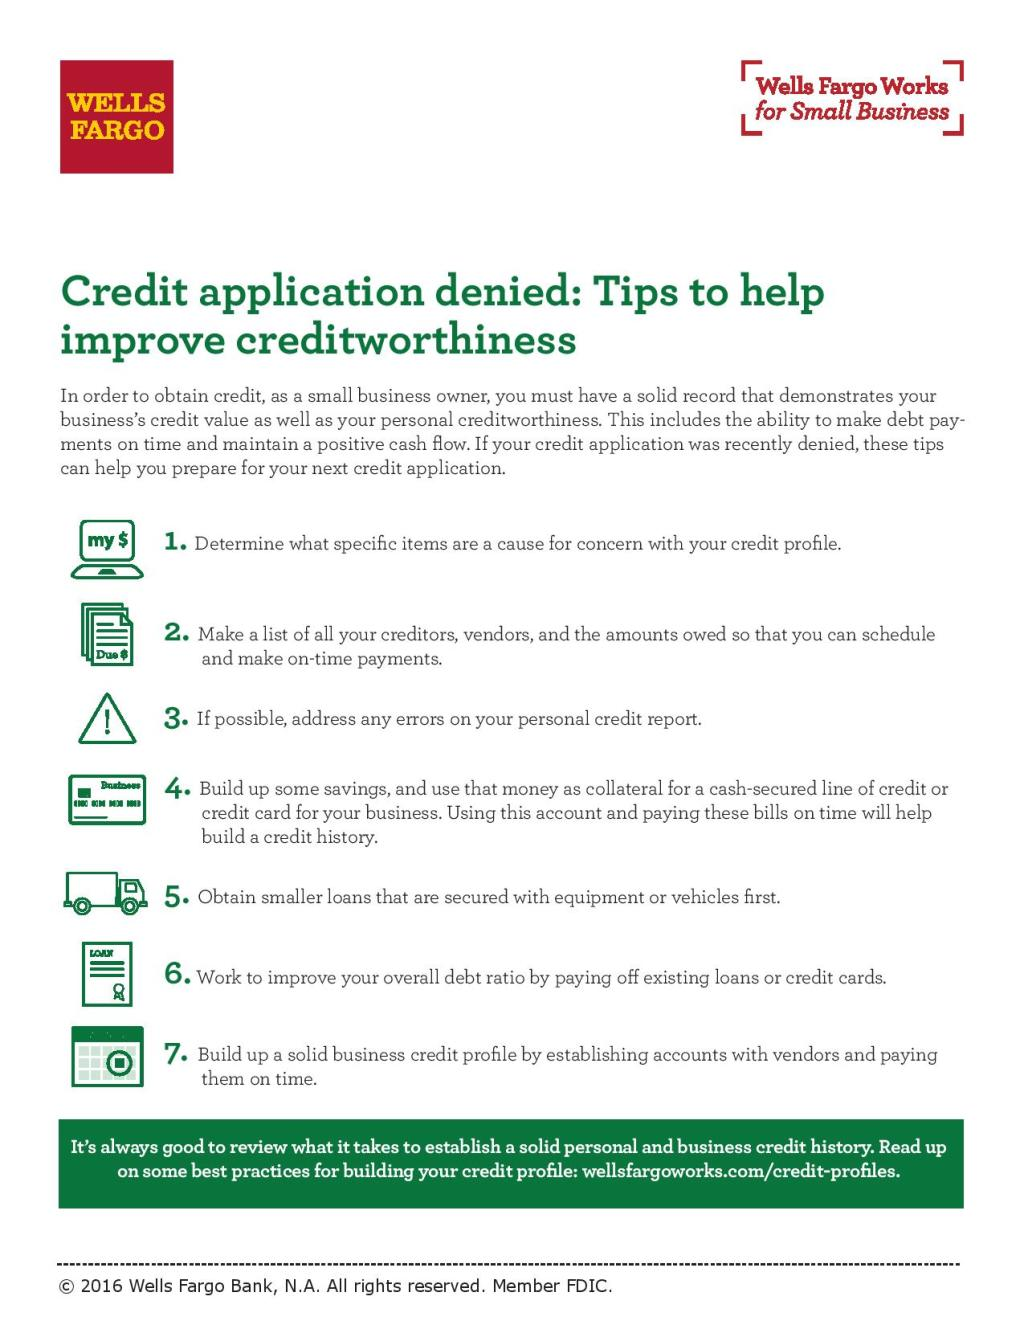 Tips for Improving Creditworthiness | Wells Fargo